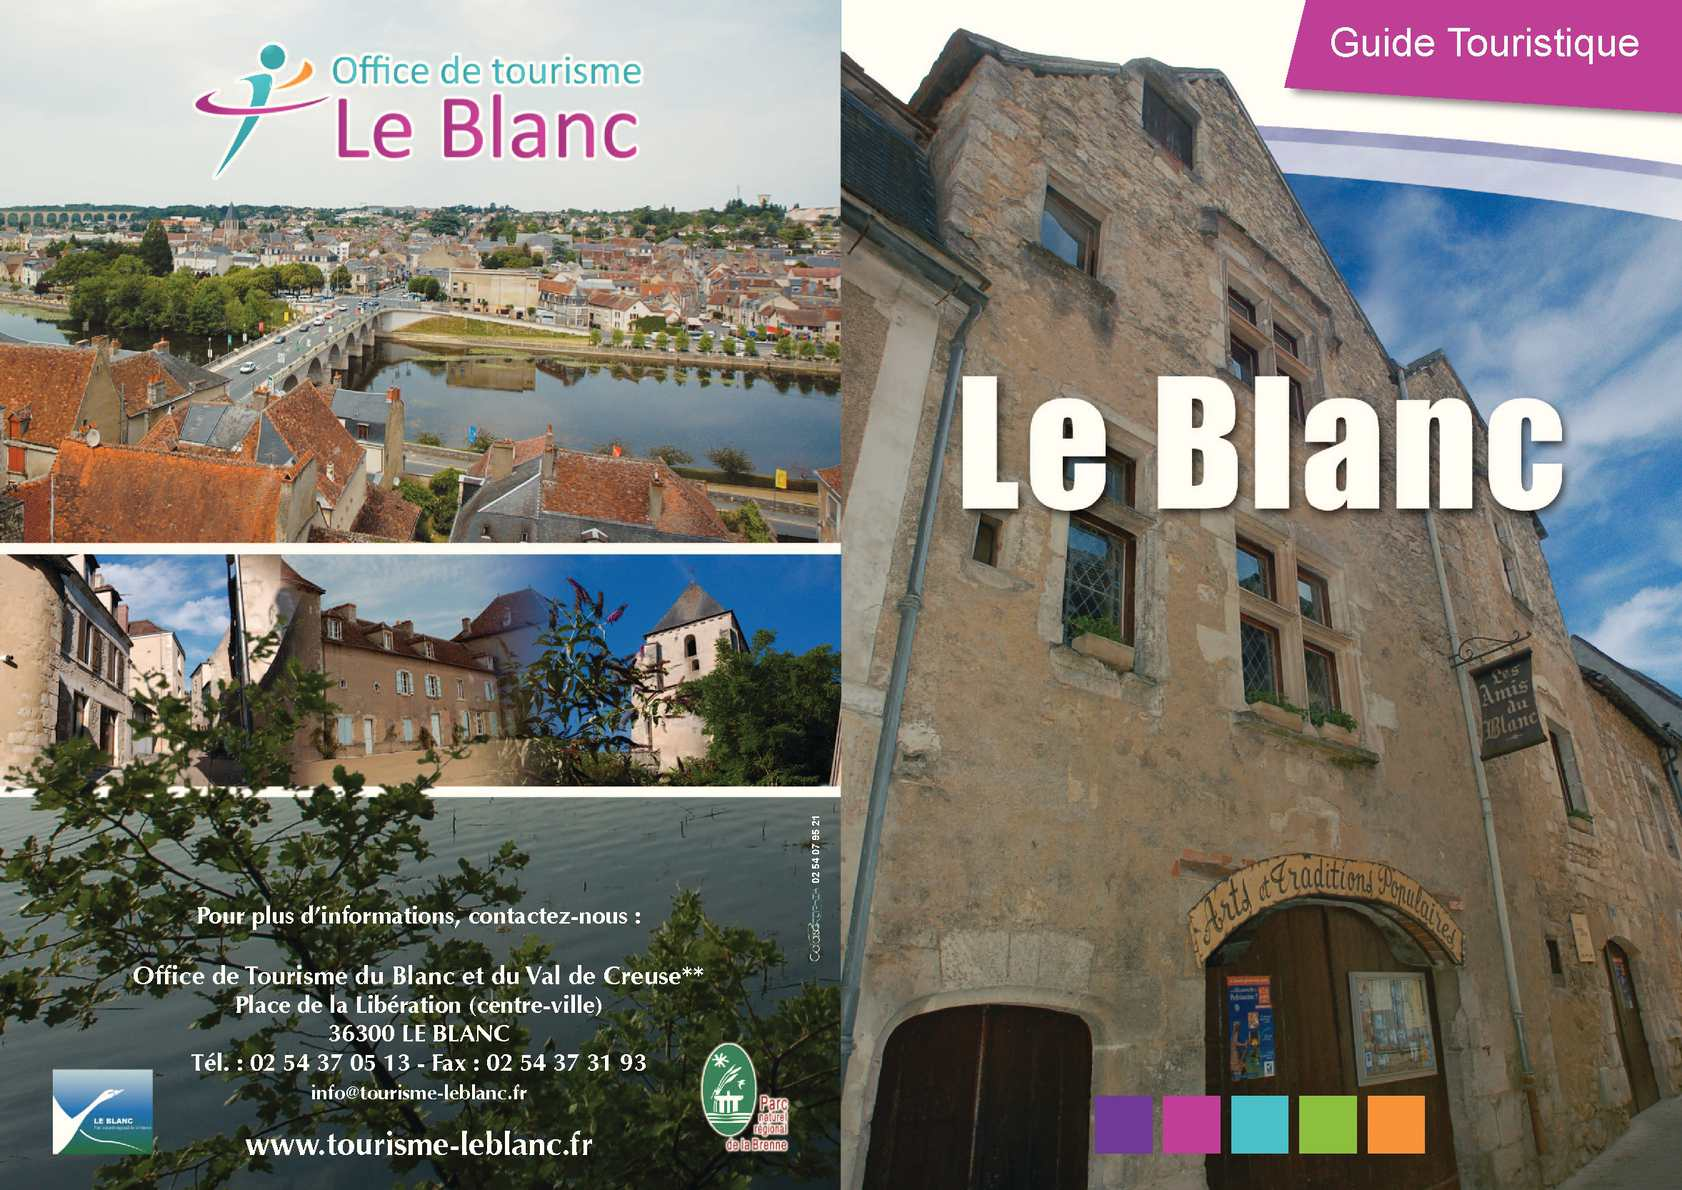 office de tourisme 36300 le blanc